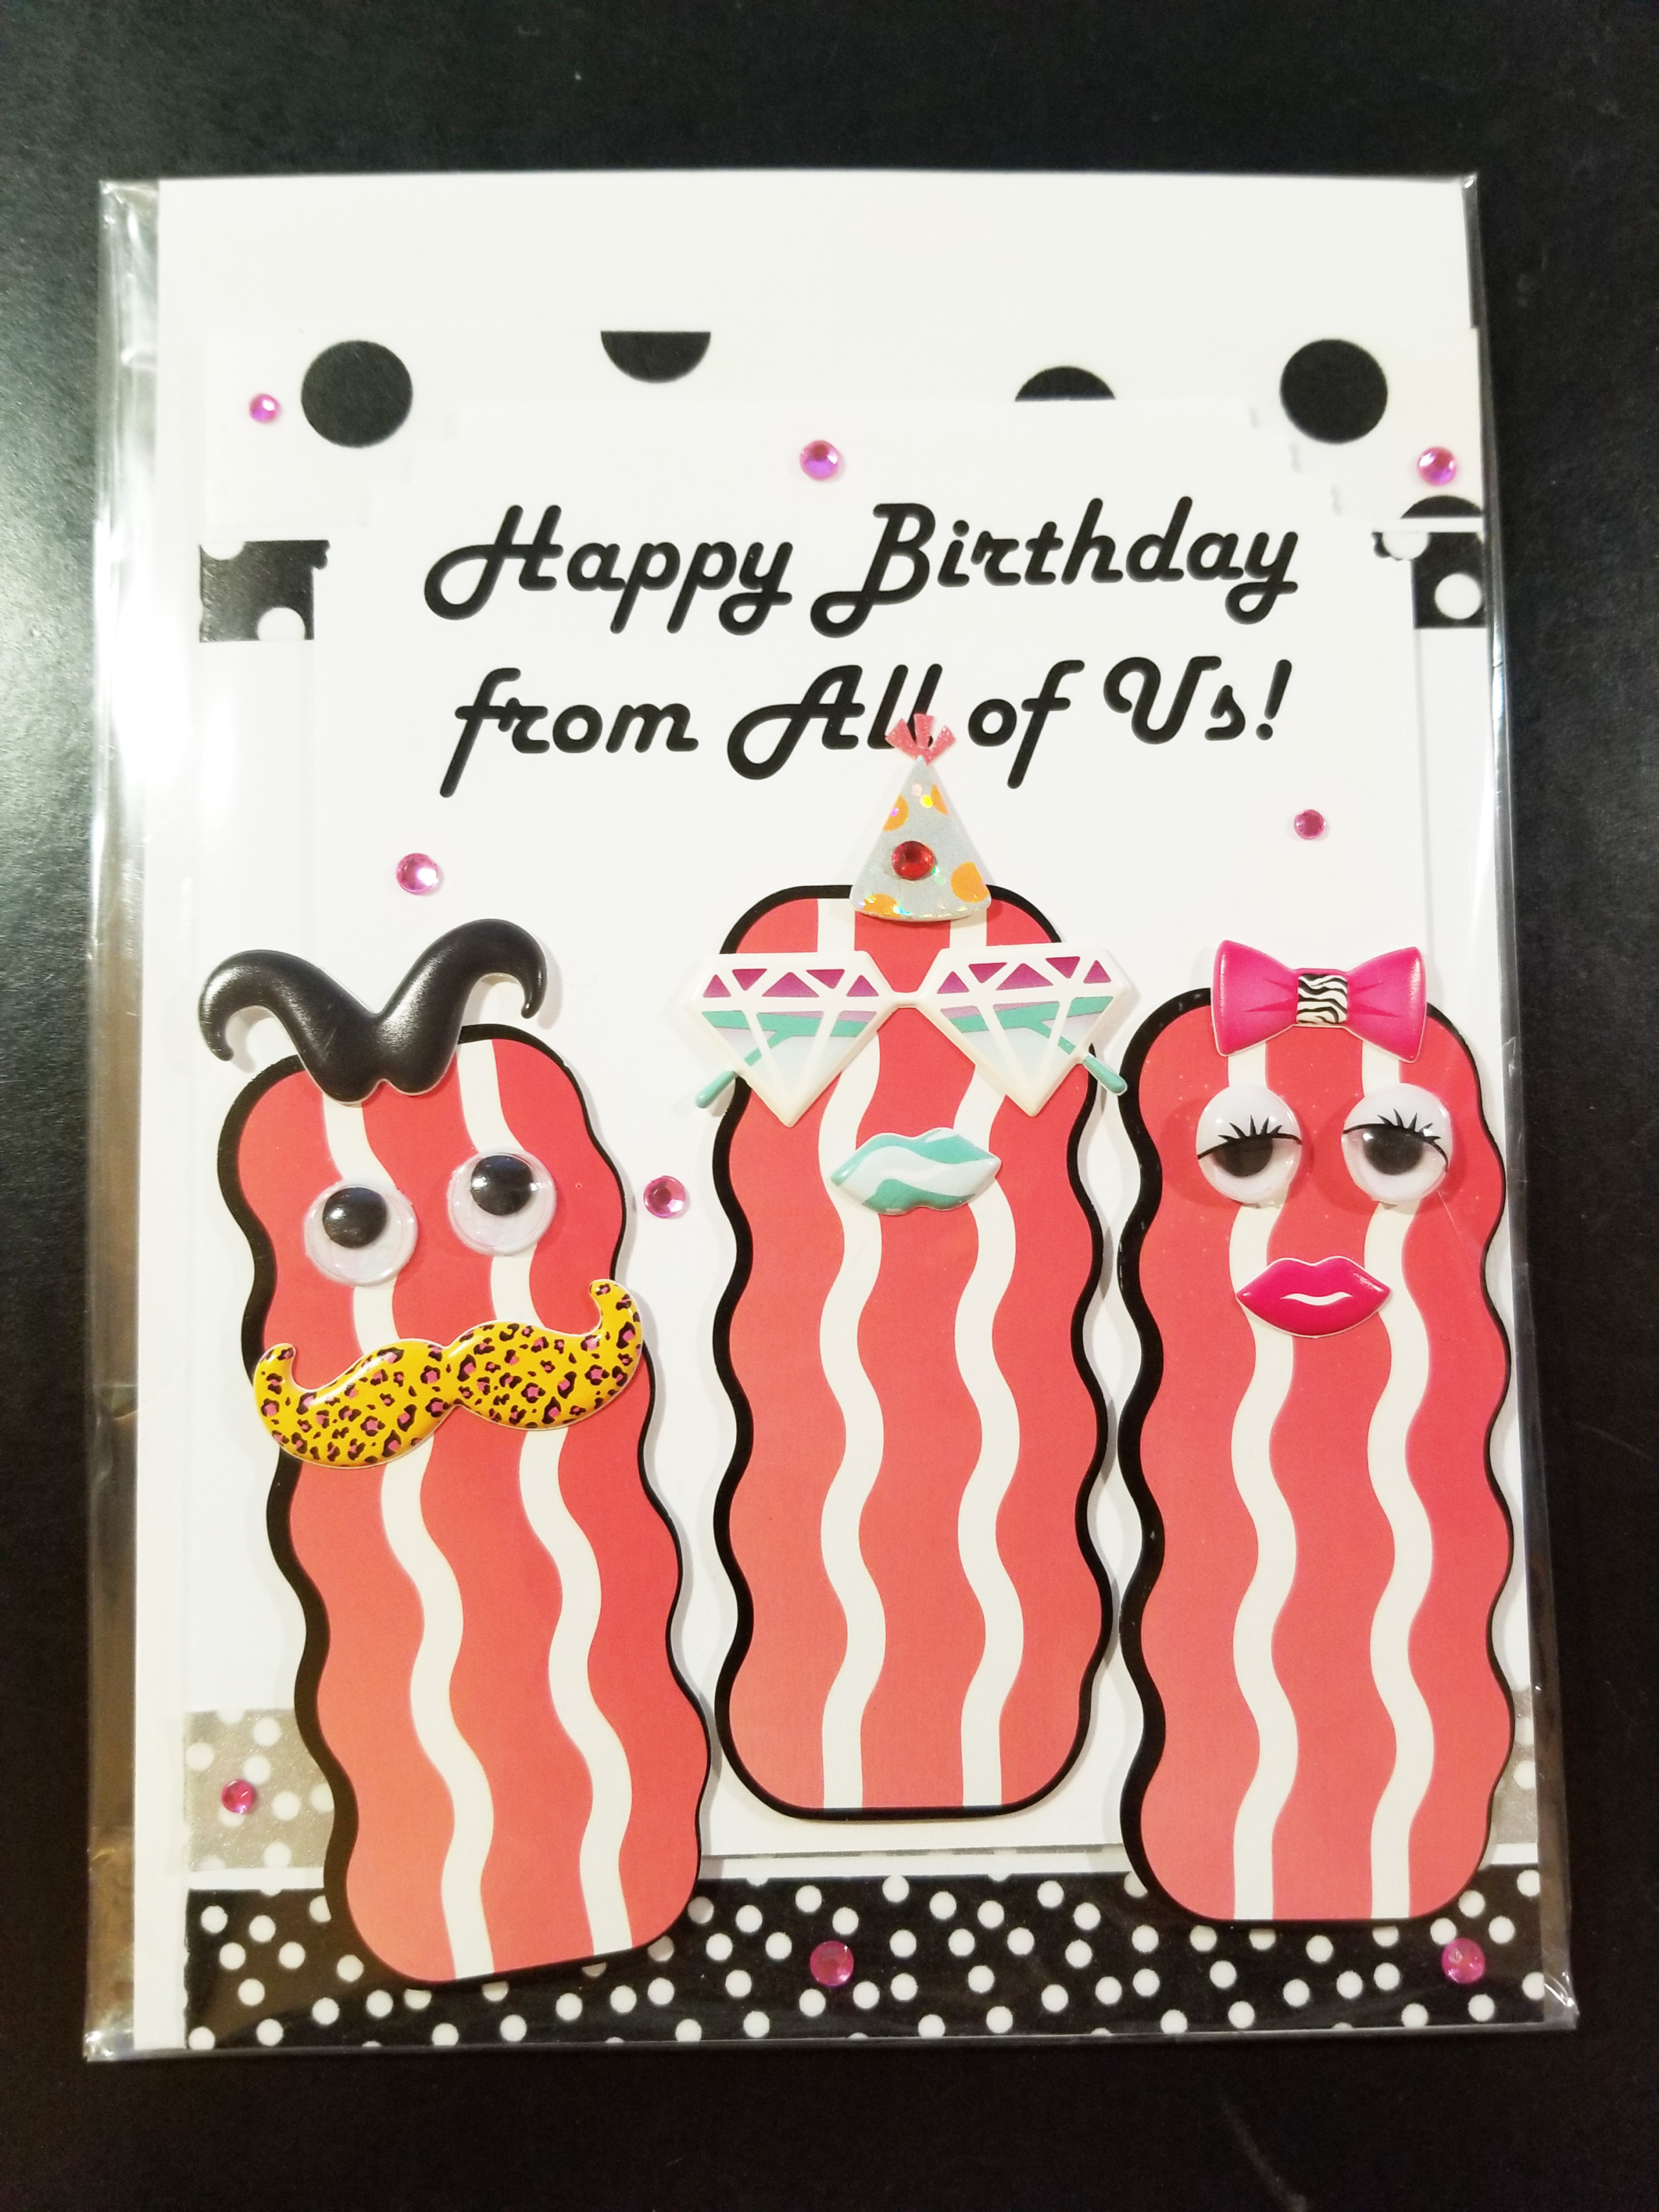 Stupendous Happy Birthday From All Of Us Bacon Friends Handmade Greeting Card Personalised Birthday Cards Paralily Jamesorg